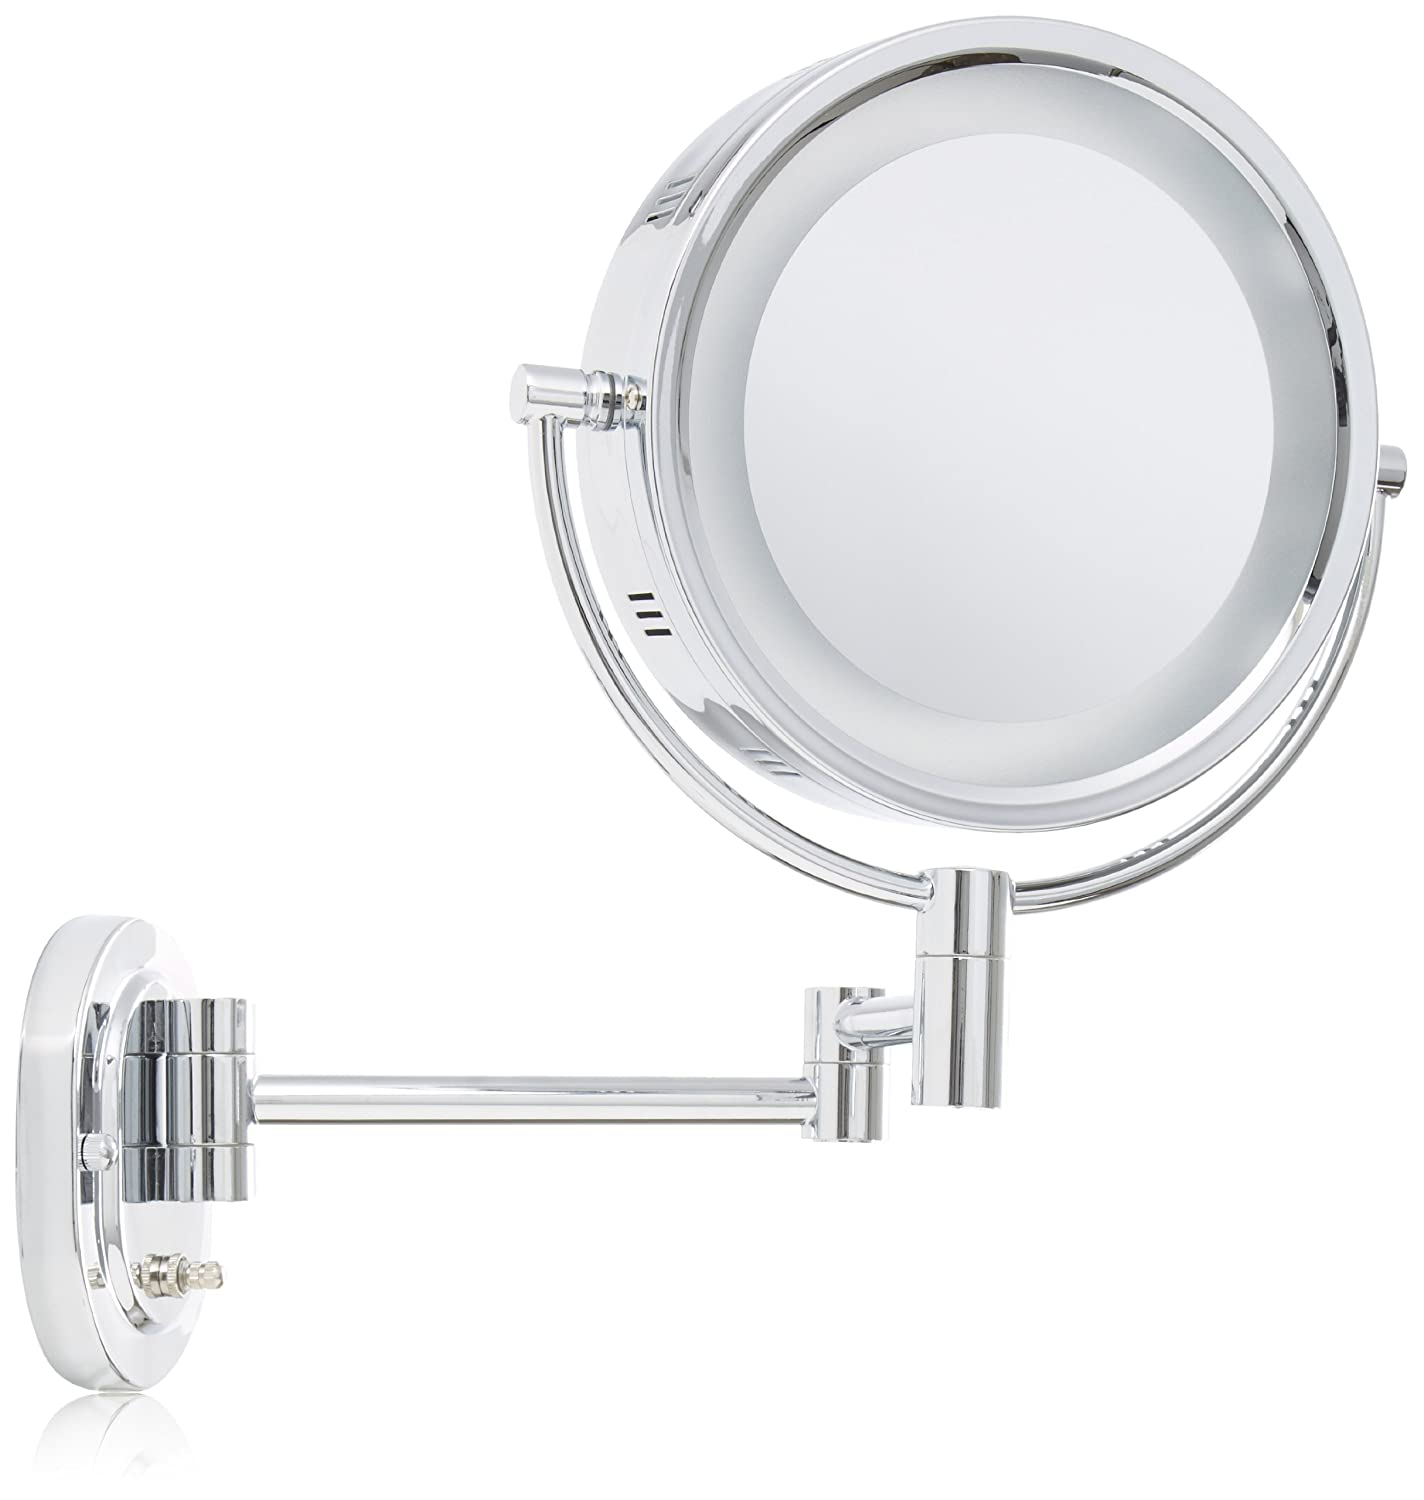 Amazon com   Jerdon HL65C 8 Inch Lighted Wall Mount Makeup Mirror with 5x  Magnification  Chrome Finish   Personal Makeup Mirrors   Beauty. Amazon com   Jerdon HL65C 8 Inch Lighted Wall Mount Makeup Mirror